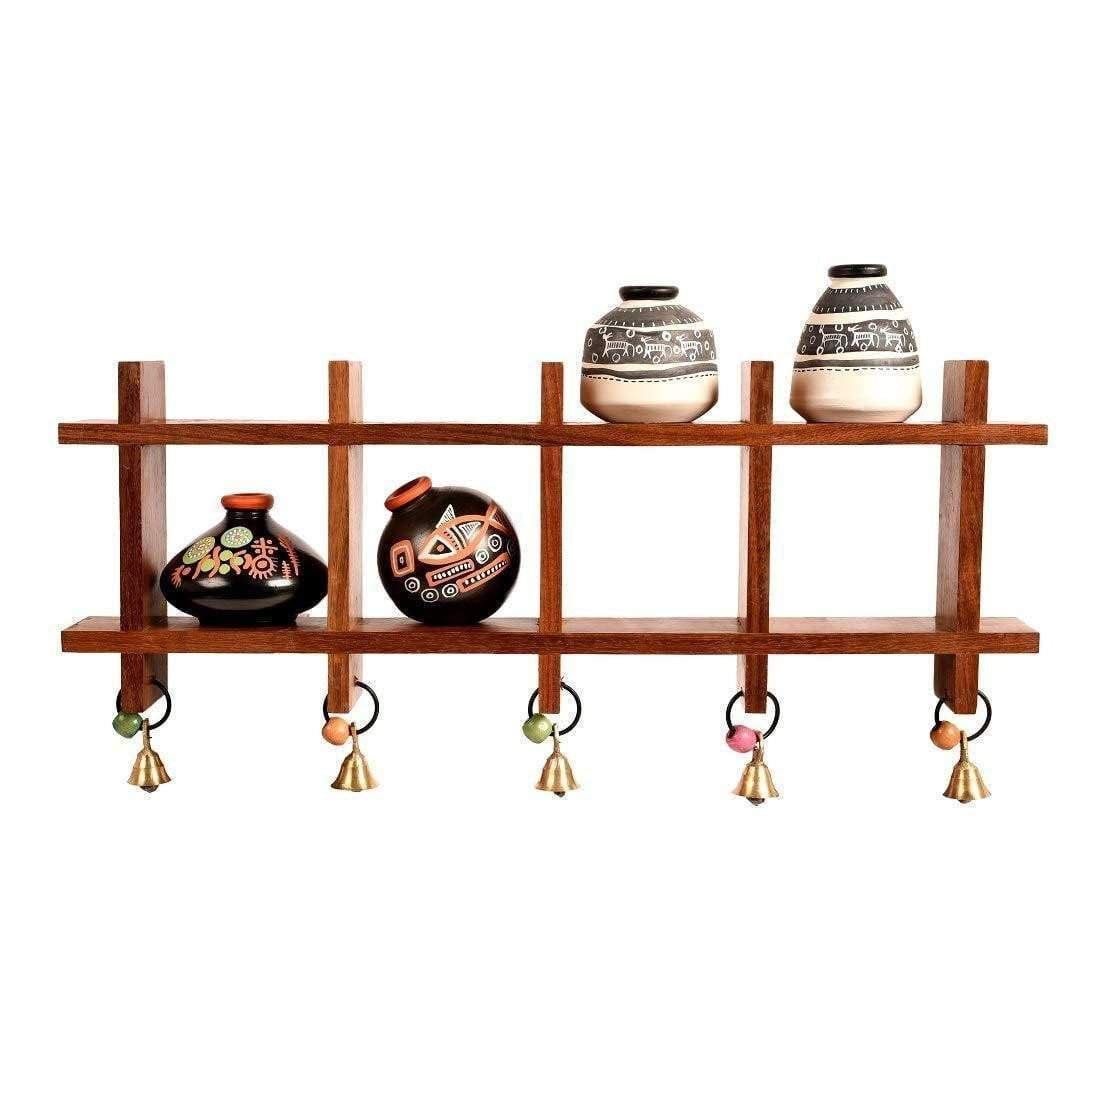 Wall Mounted Wooden Shelf With Terracotta Vases